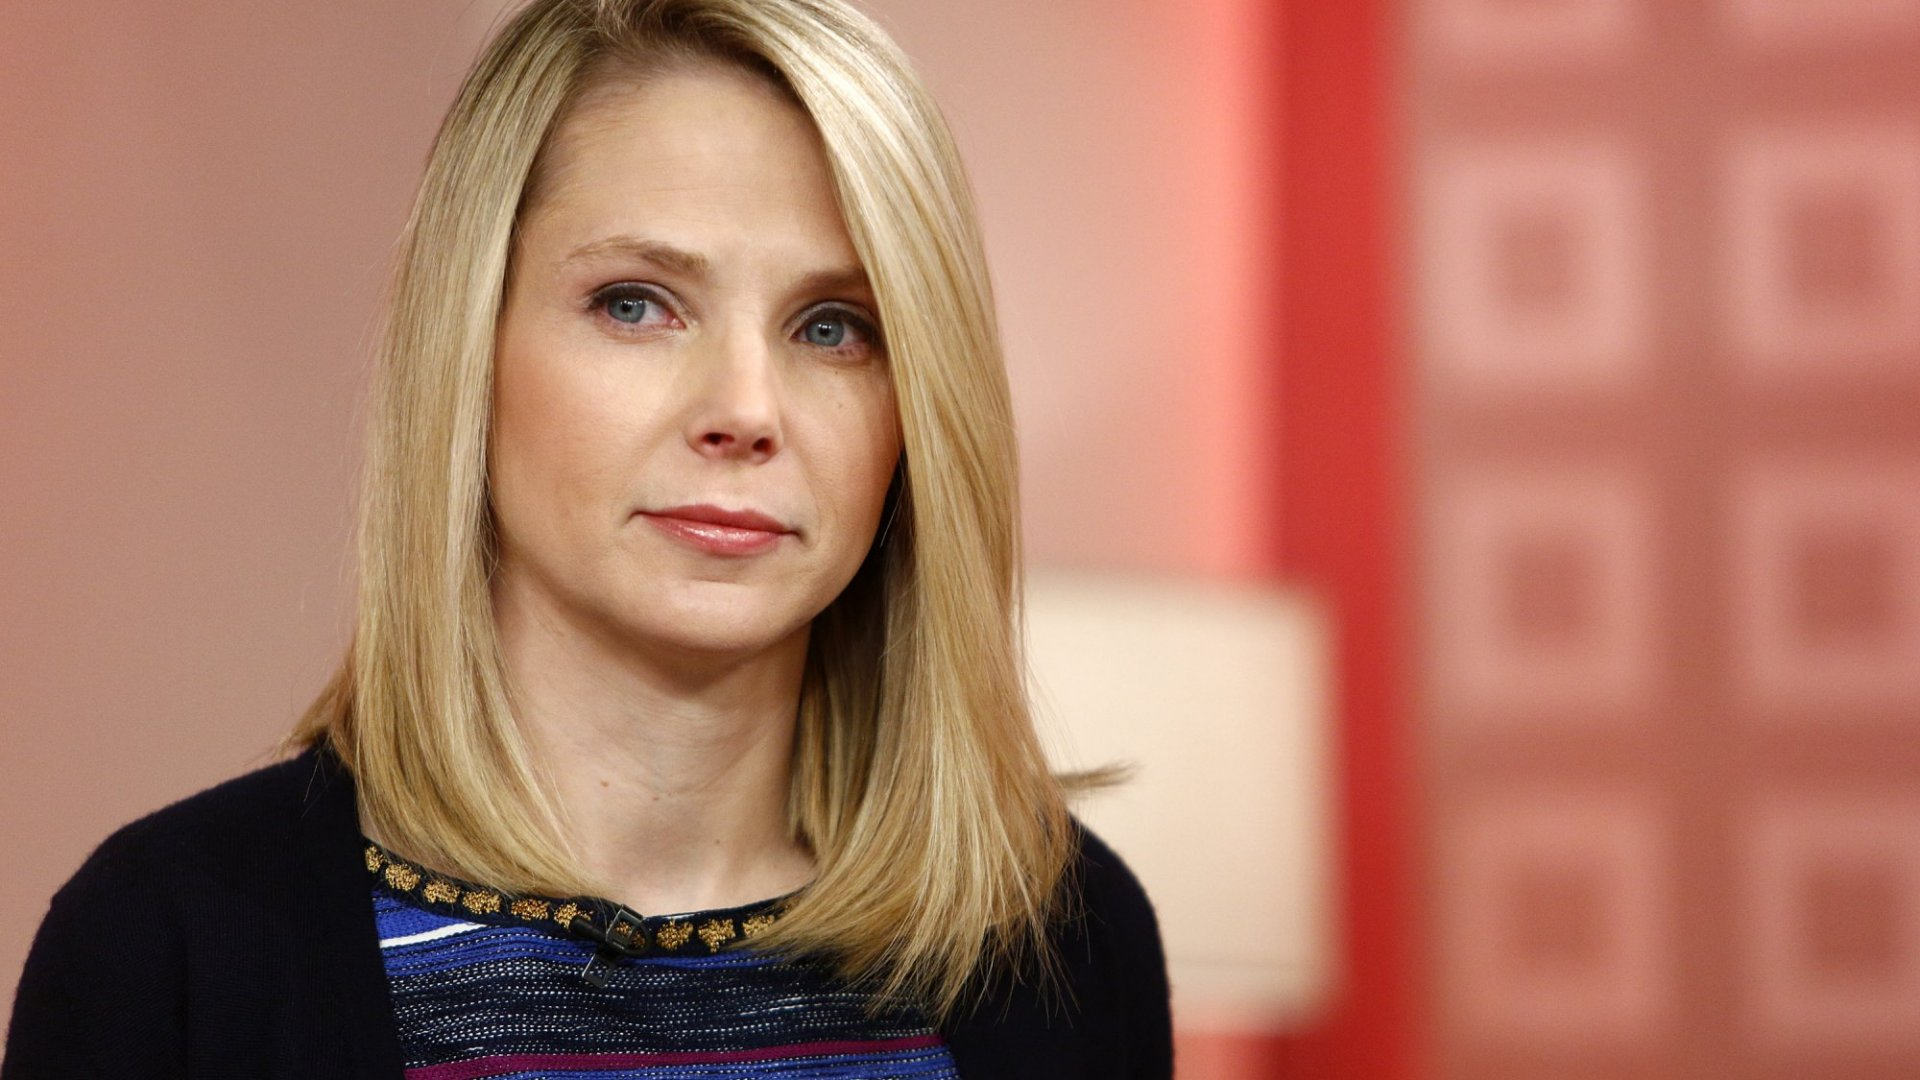 Yahoo CEO's Approach to Maternity Leave Could Influence Employees